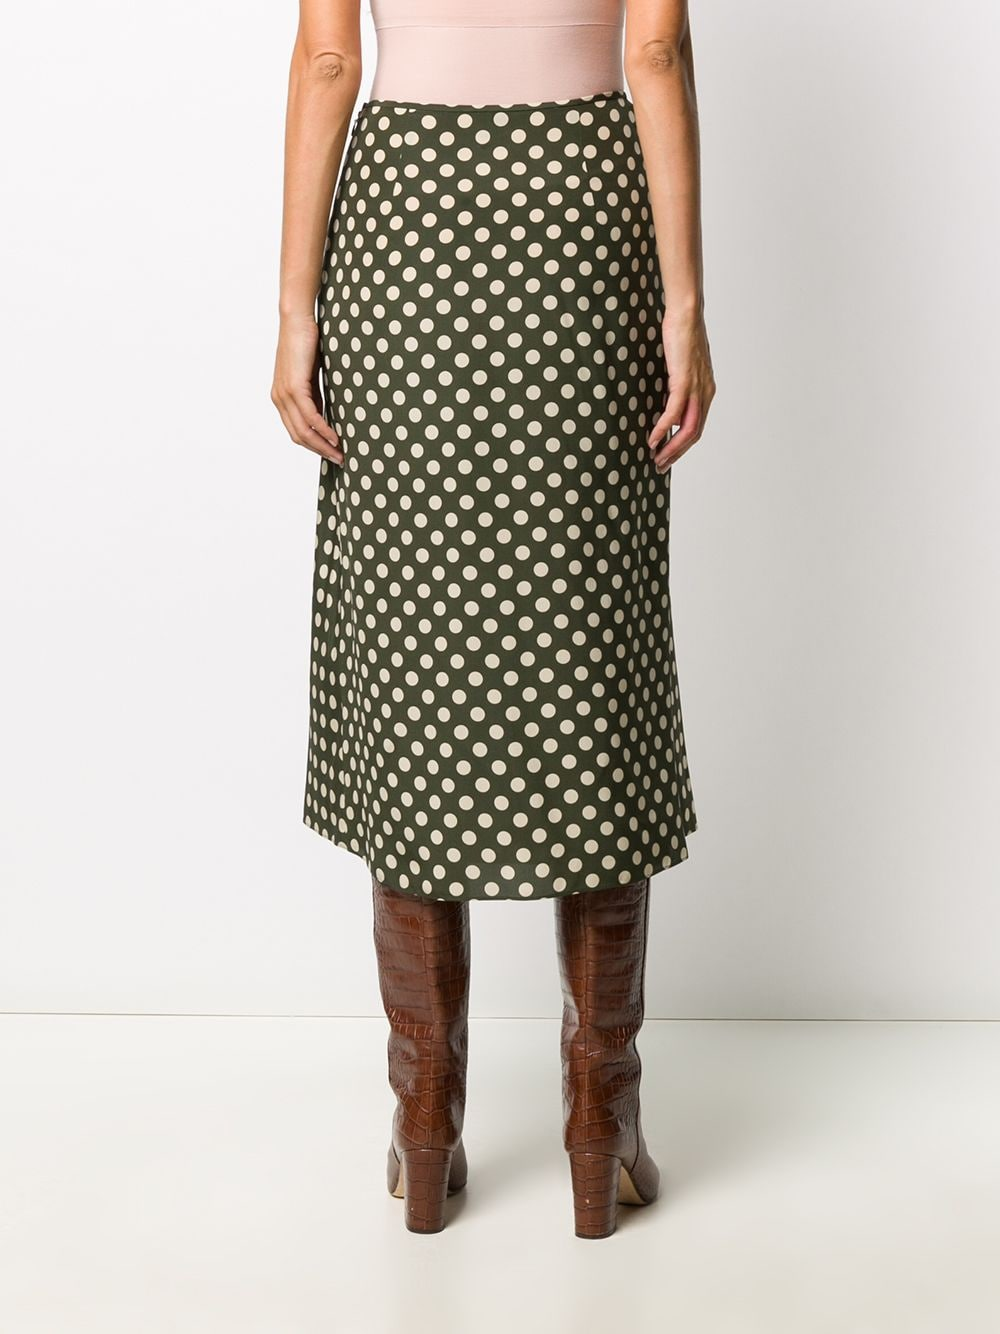 Army green and cream white silk polka dot skirt   ALBERTO ASPESI |  | 2204-A32355237